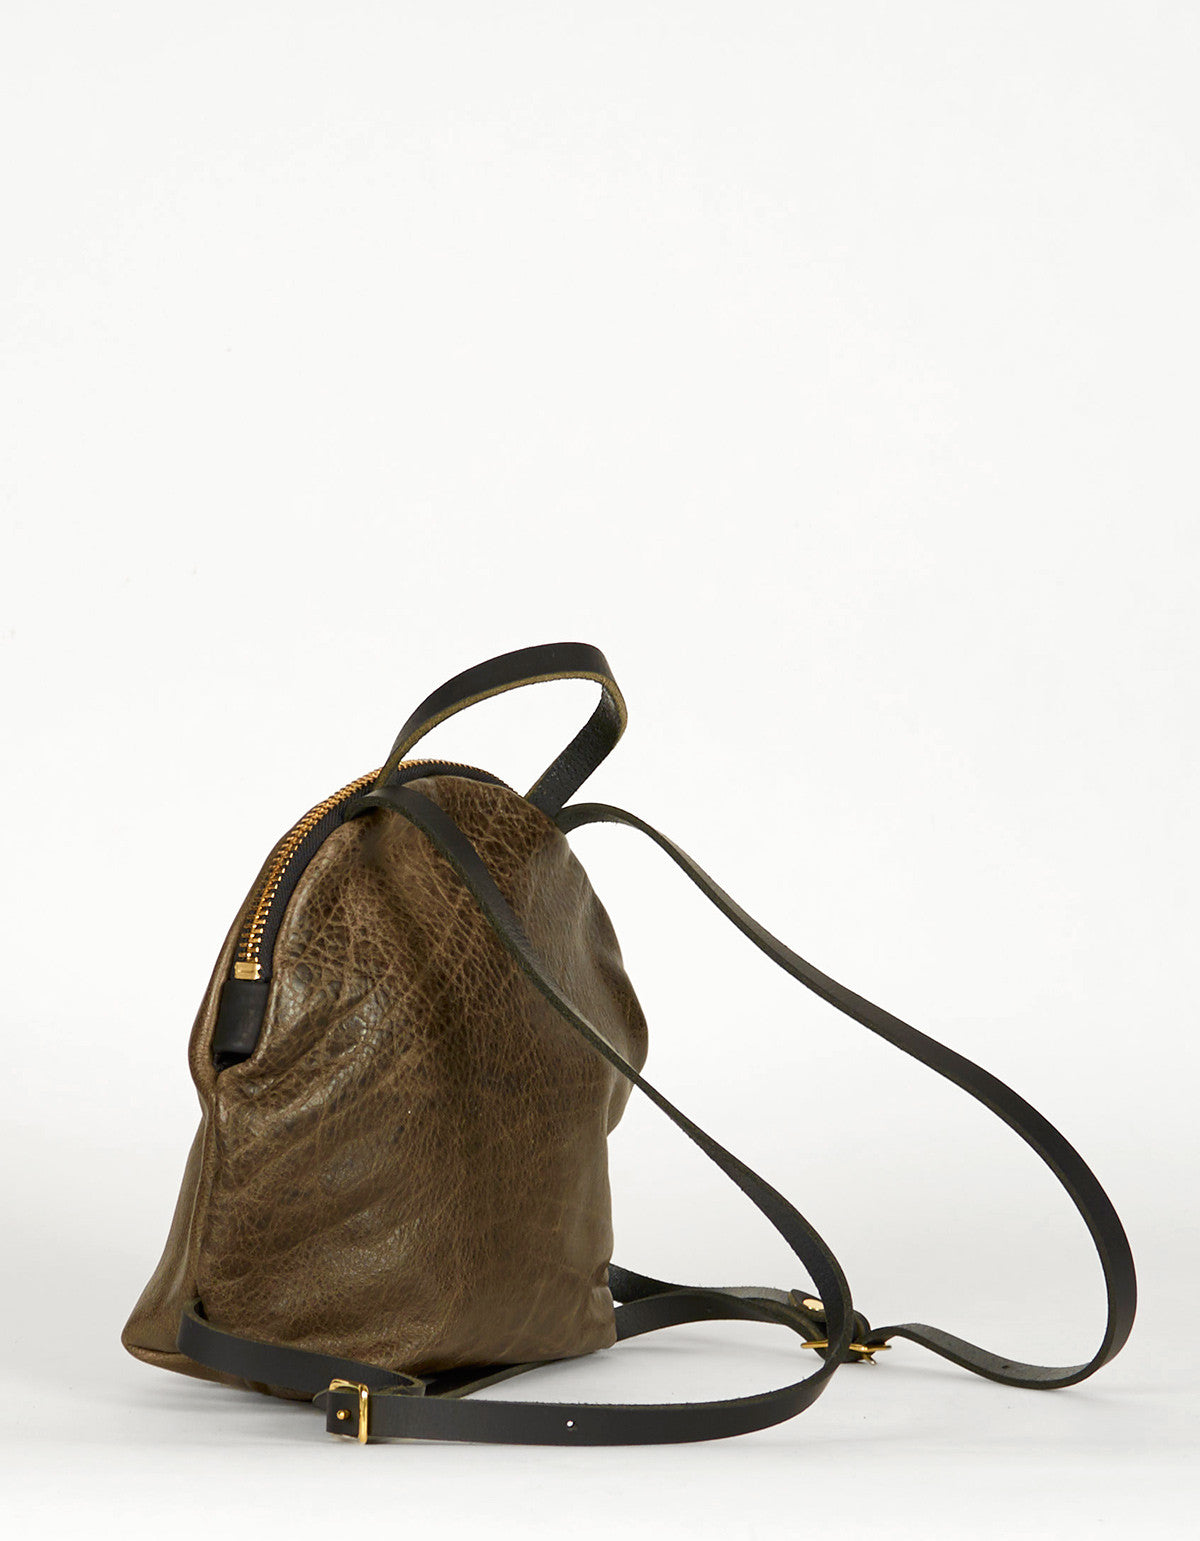 Eleven Thirty Anni Mini Backpack Steel - Still Life - 5